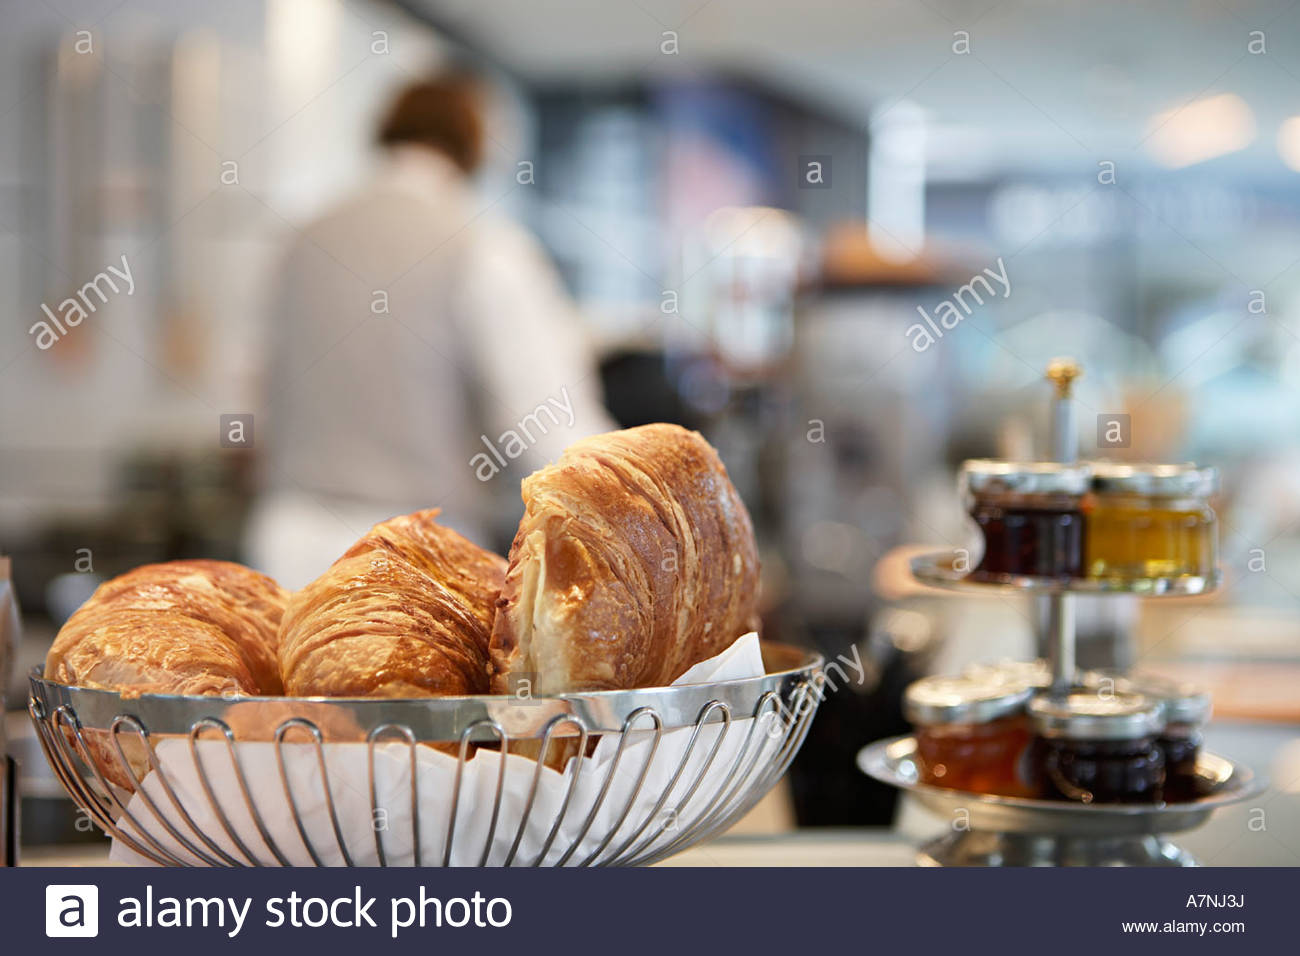 Croissants and assortment of preserves in cafe close up waiter in background focus on foreground - Stock Image